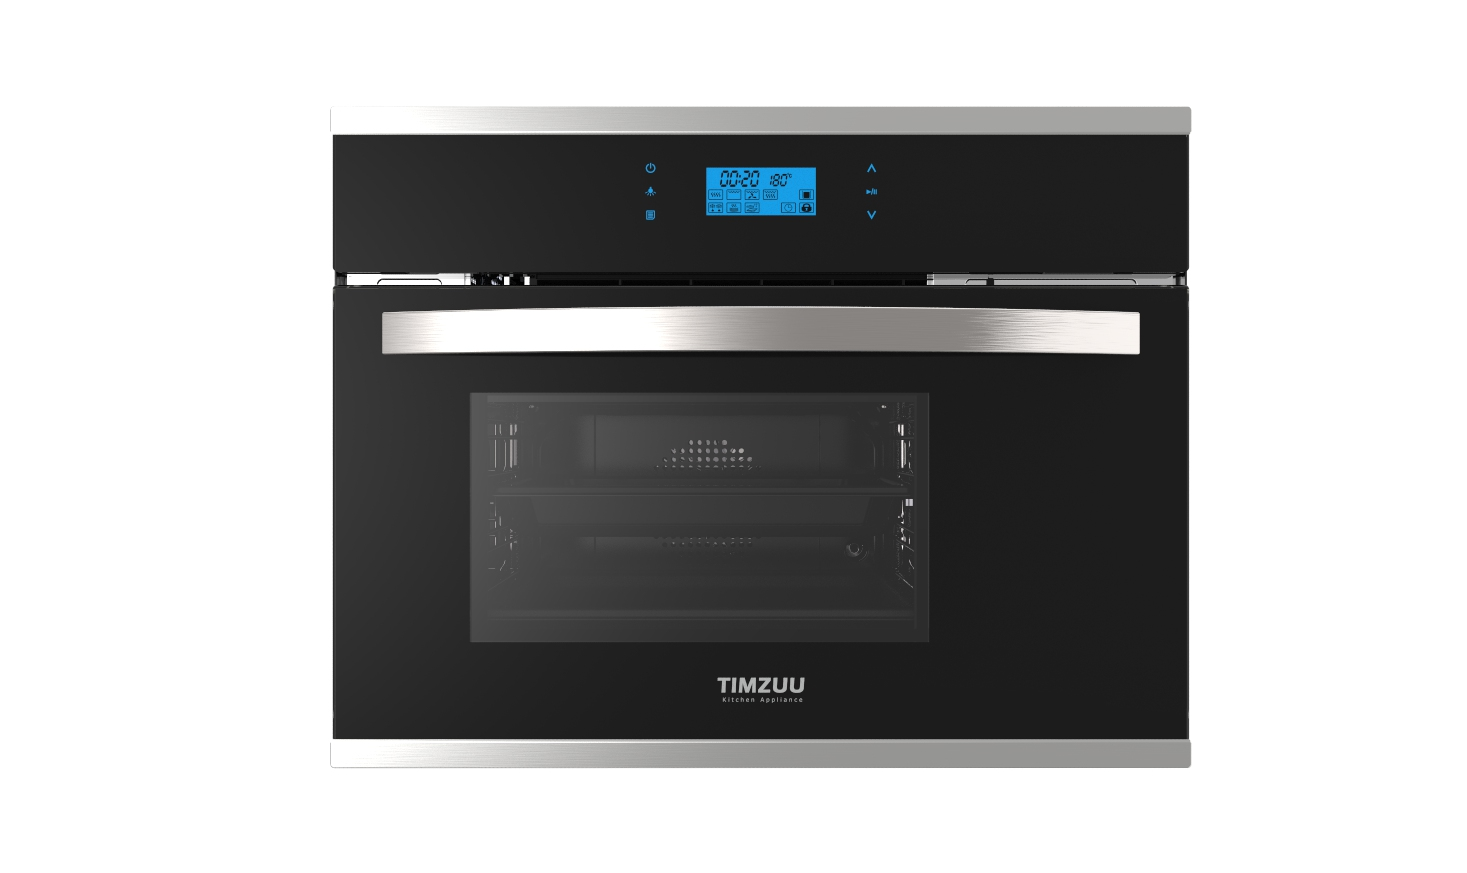 28L touch screen built-in electric steam ovens